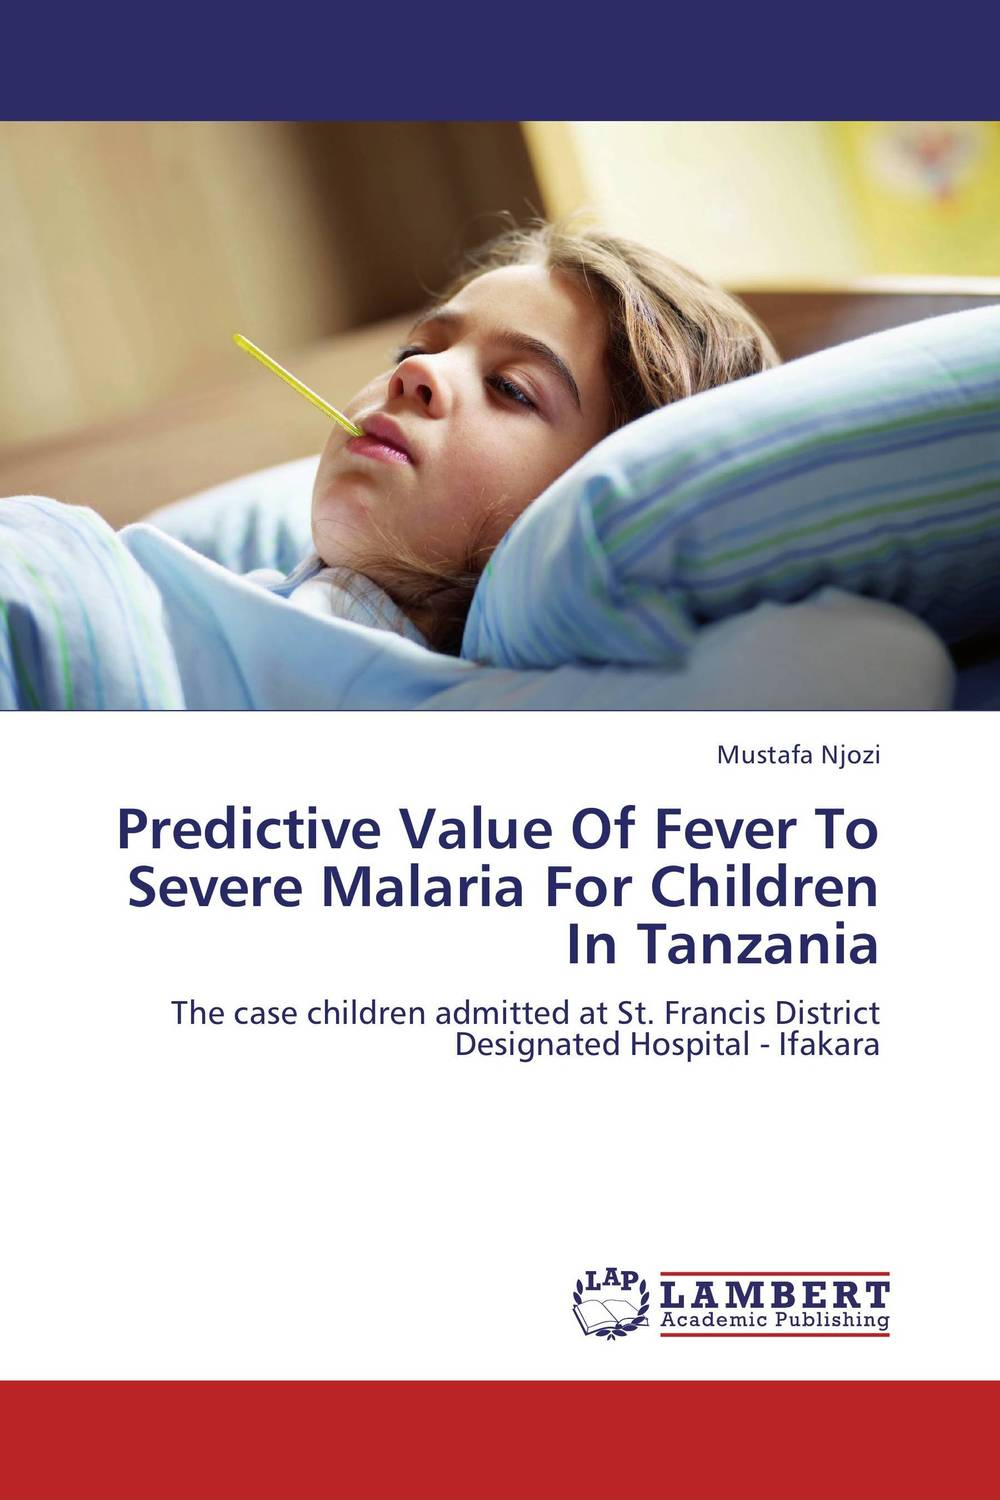 Predictive Value Of Fever To Severe Malaria For Children In Tanzania adding customer value through effective distribution strategy